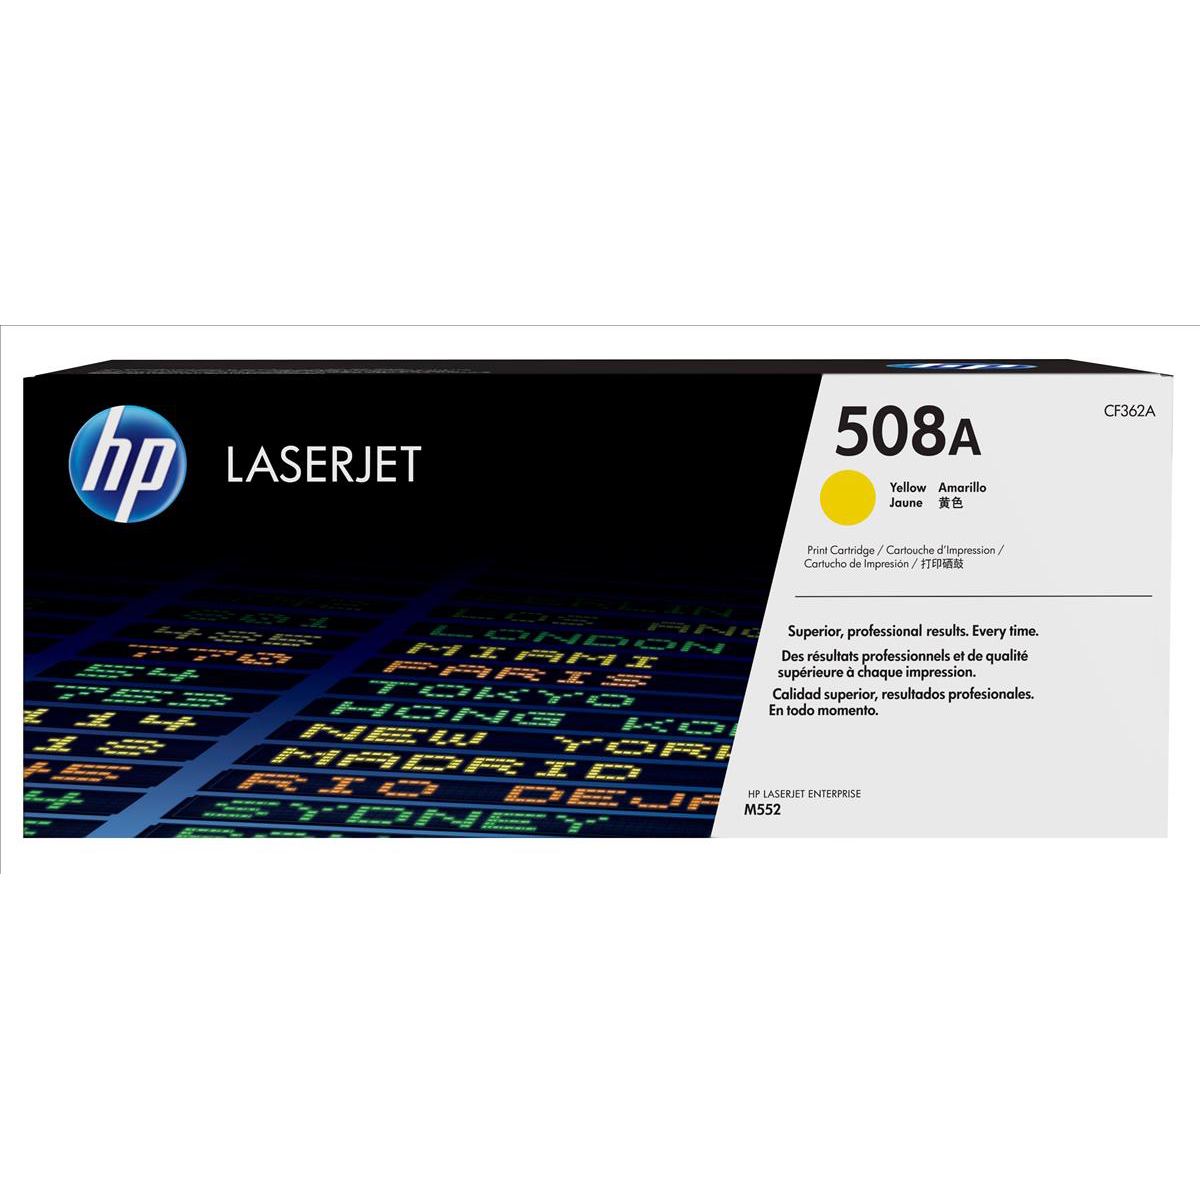 Hewlett Packard [HP] 508A LaserJet Toner Cartridge Page Life 5000pp Yellow Ref CF362A